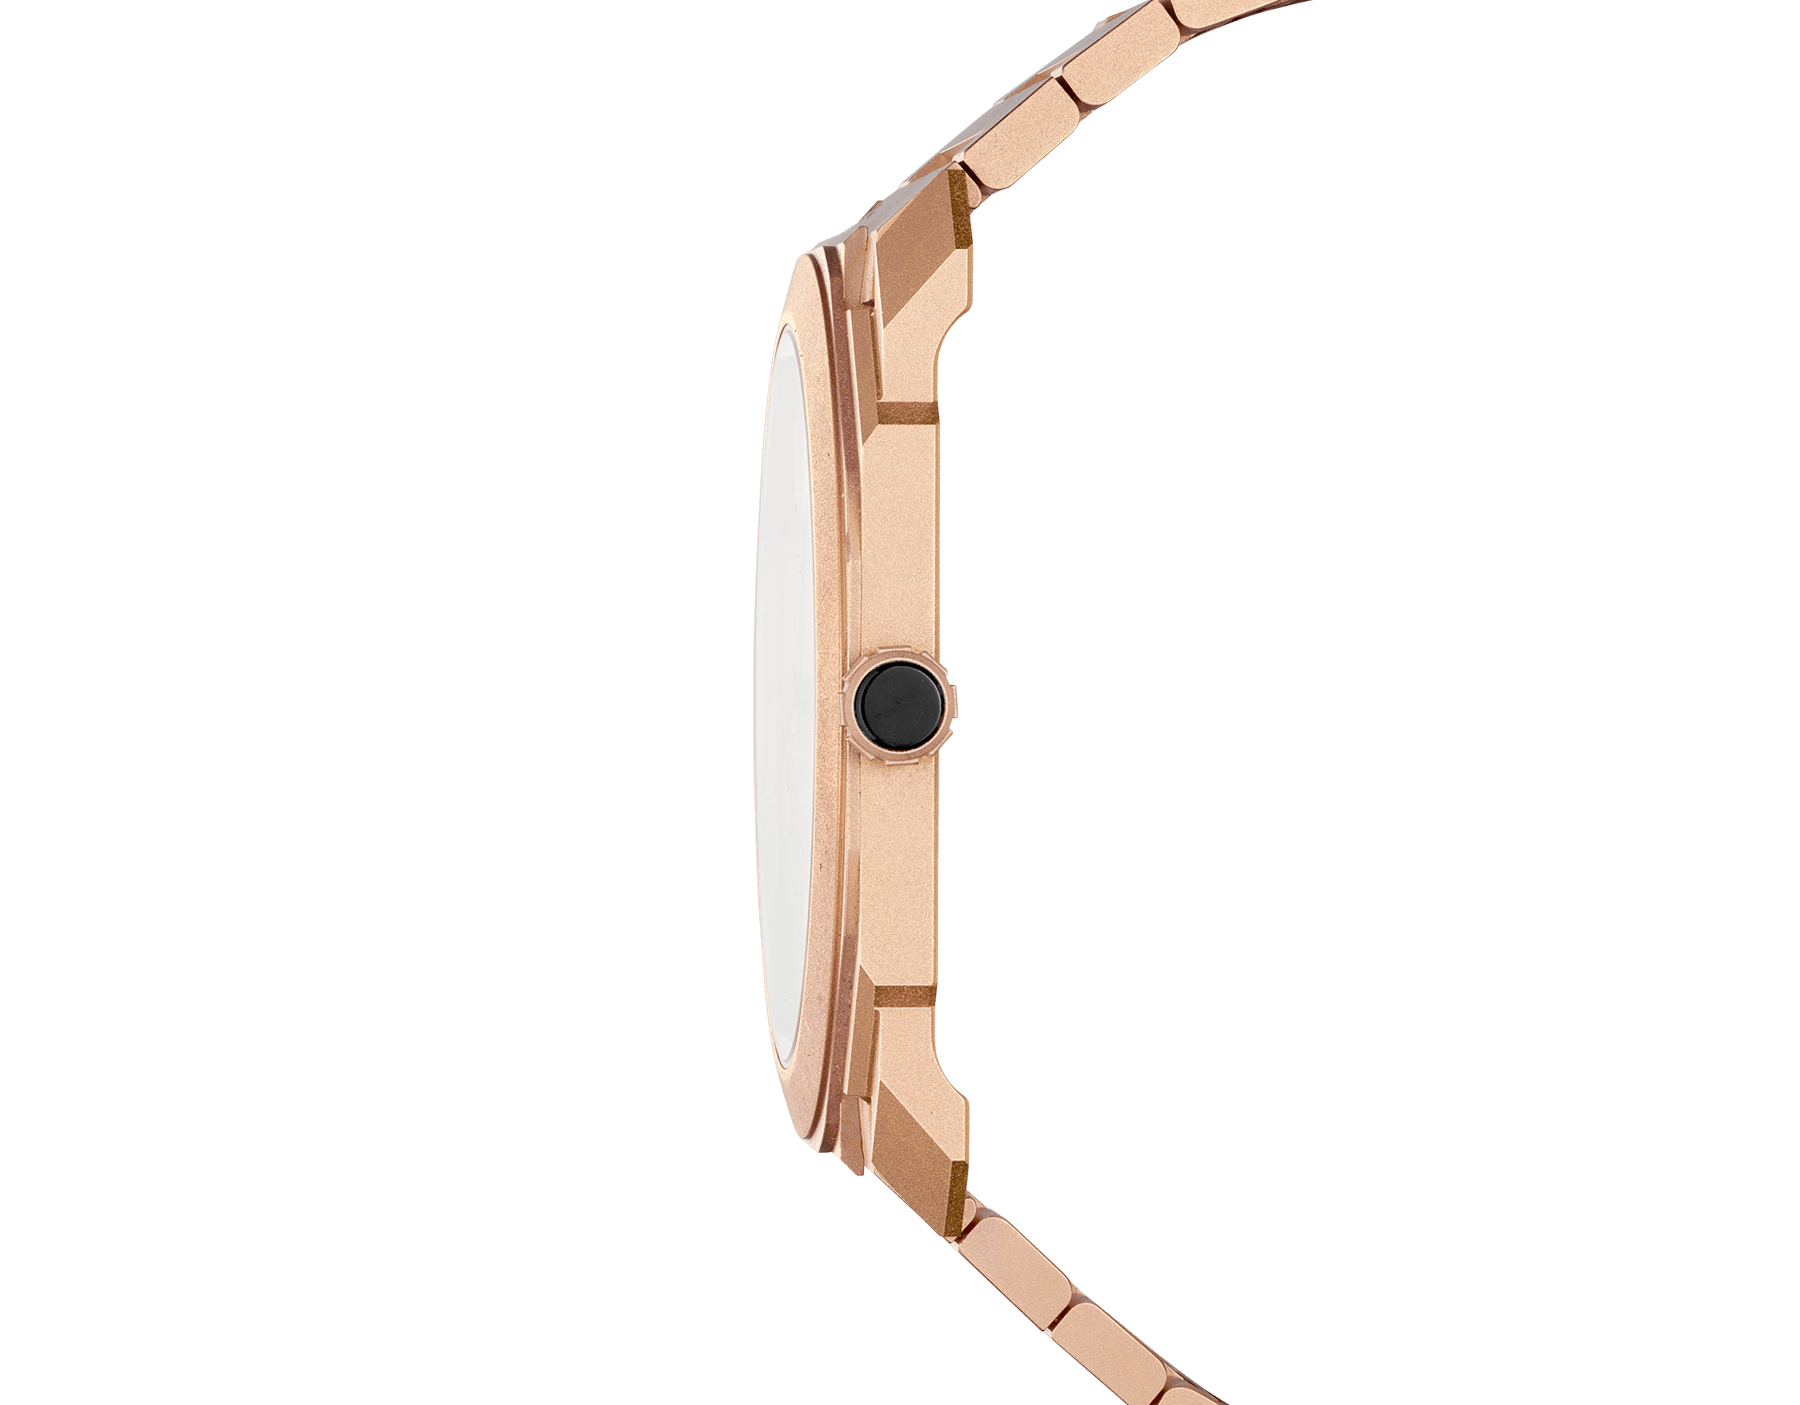 Octo Finissimo Automatic watch with mechanical manufacture movement, automatic winding, platinum microrotor, small seconds, extra-thin sandblasted 18 kt rose gold case and bracelet, and 18 kt rose gold dial 102912 image 3